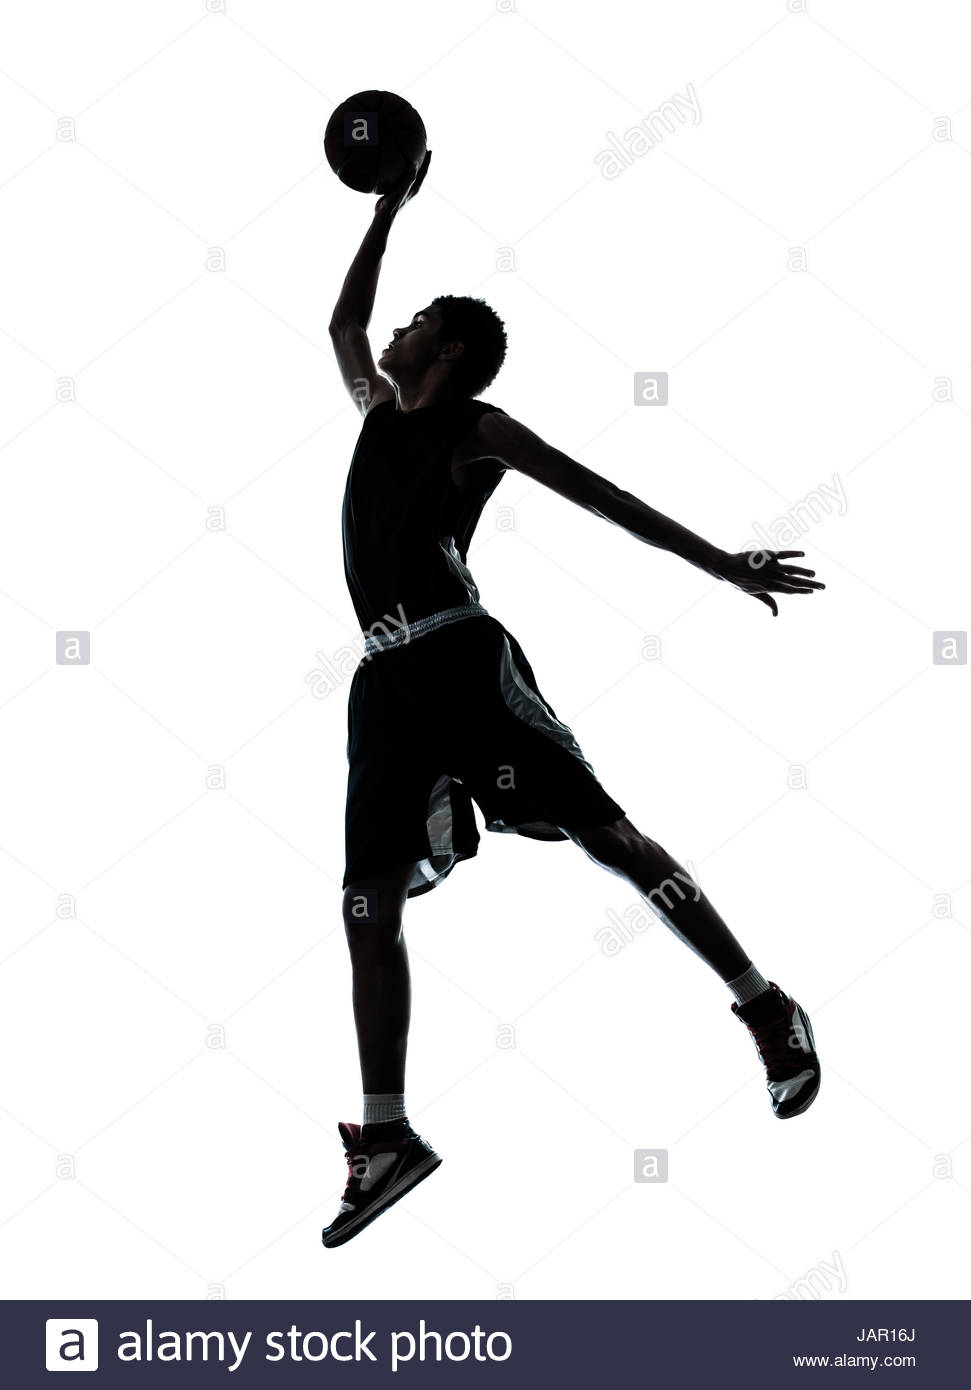 971x1390 One Young Man Basketball Player Dunking Silhouette In Studio